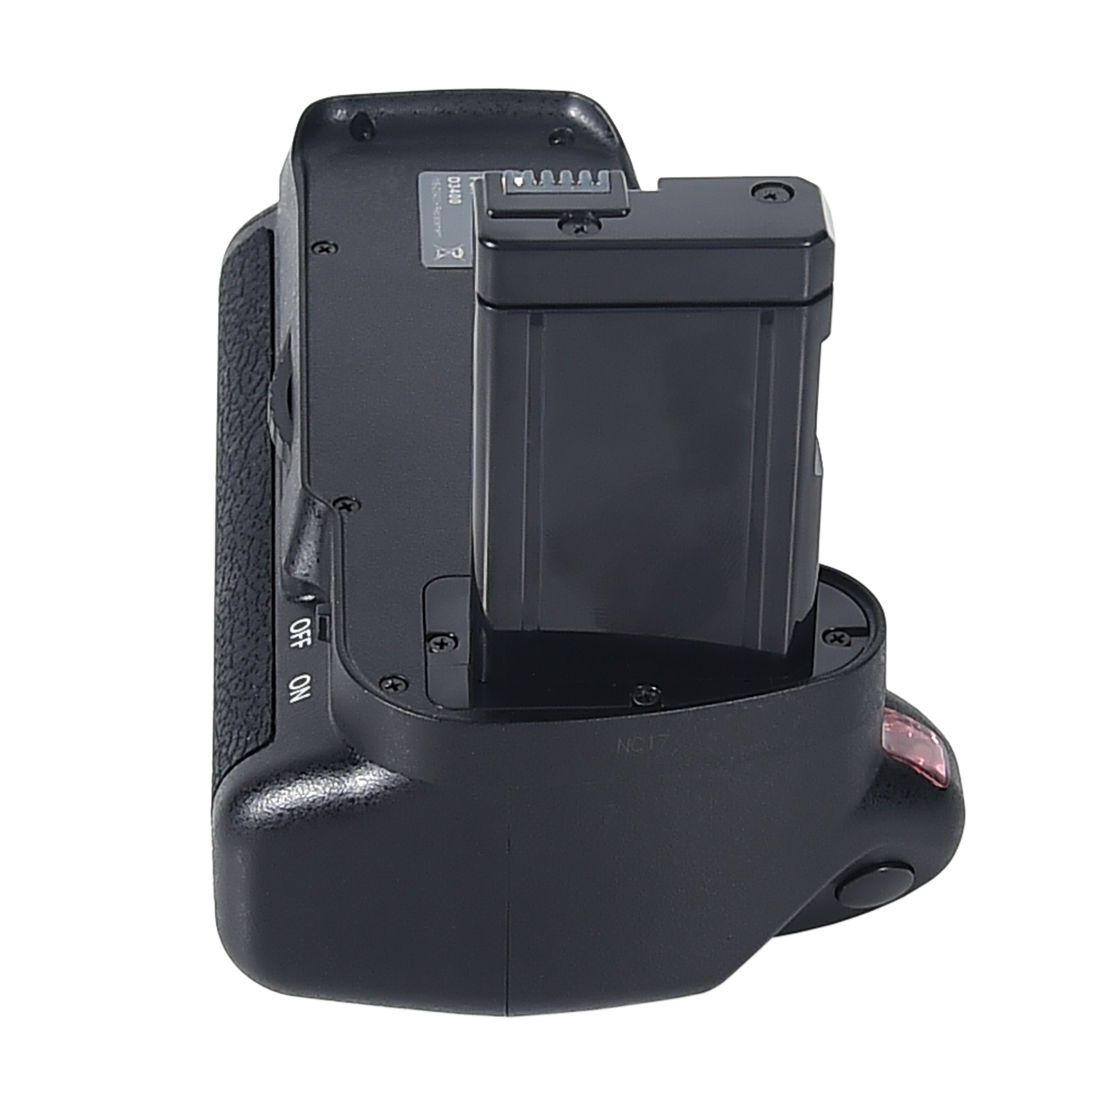 BATTERY GRIP MB-D3400 PARA NIKON D3400